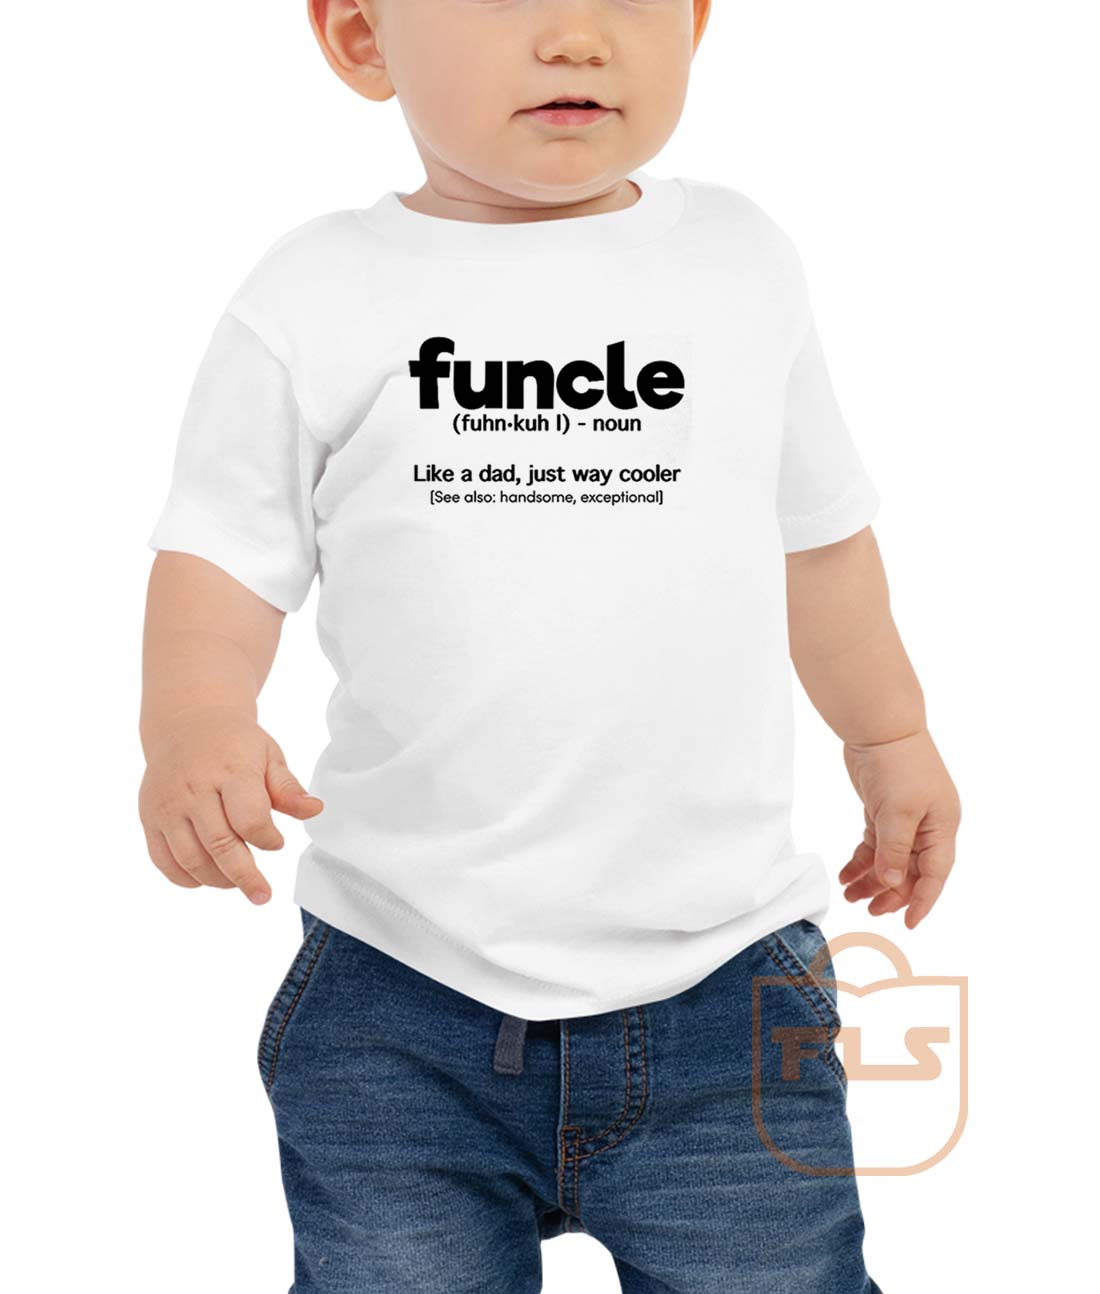 a55324ad7 Funcle Definition Toddler T Shirt - Ferolos.com